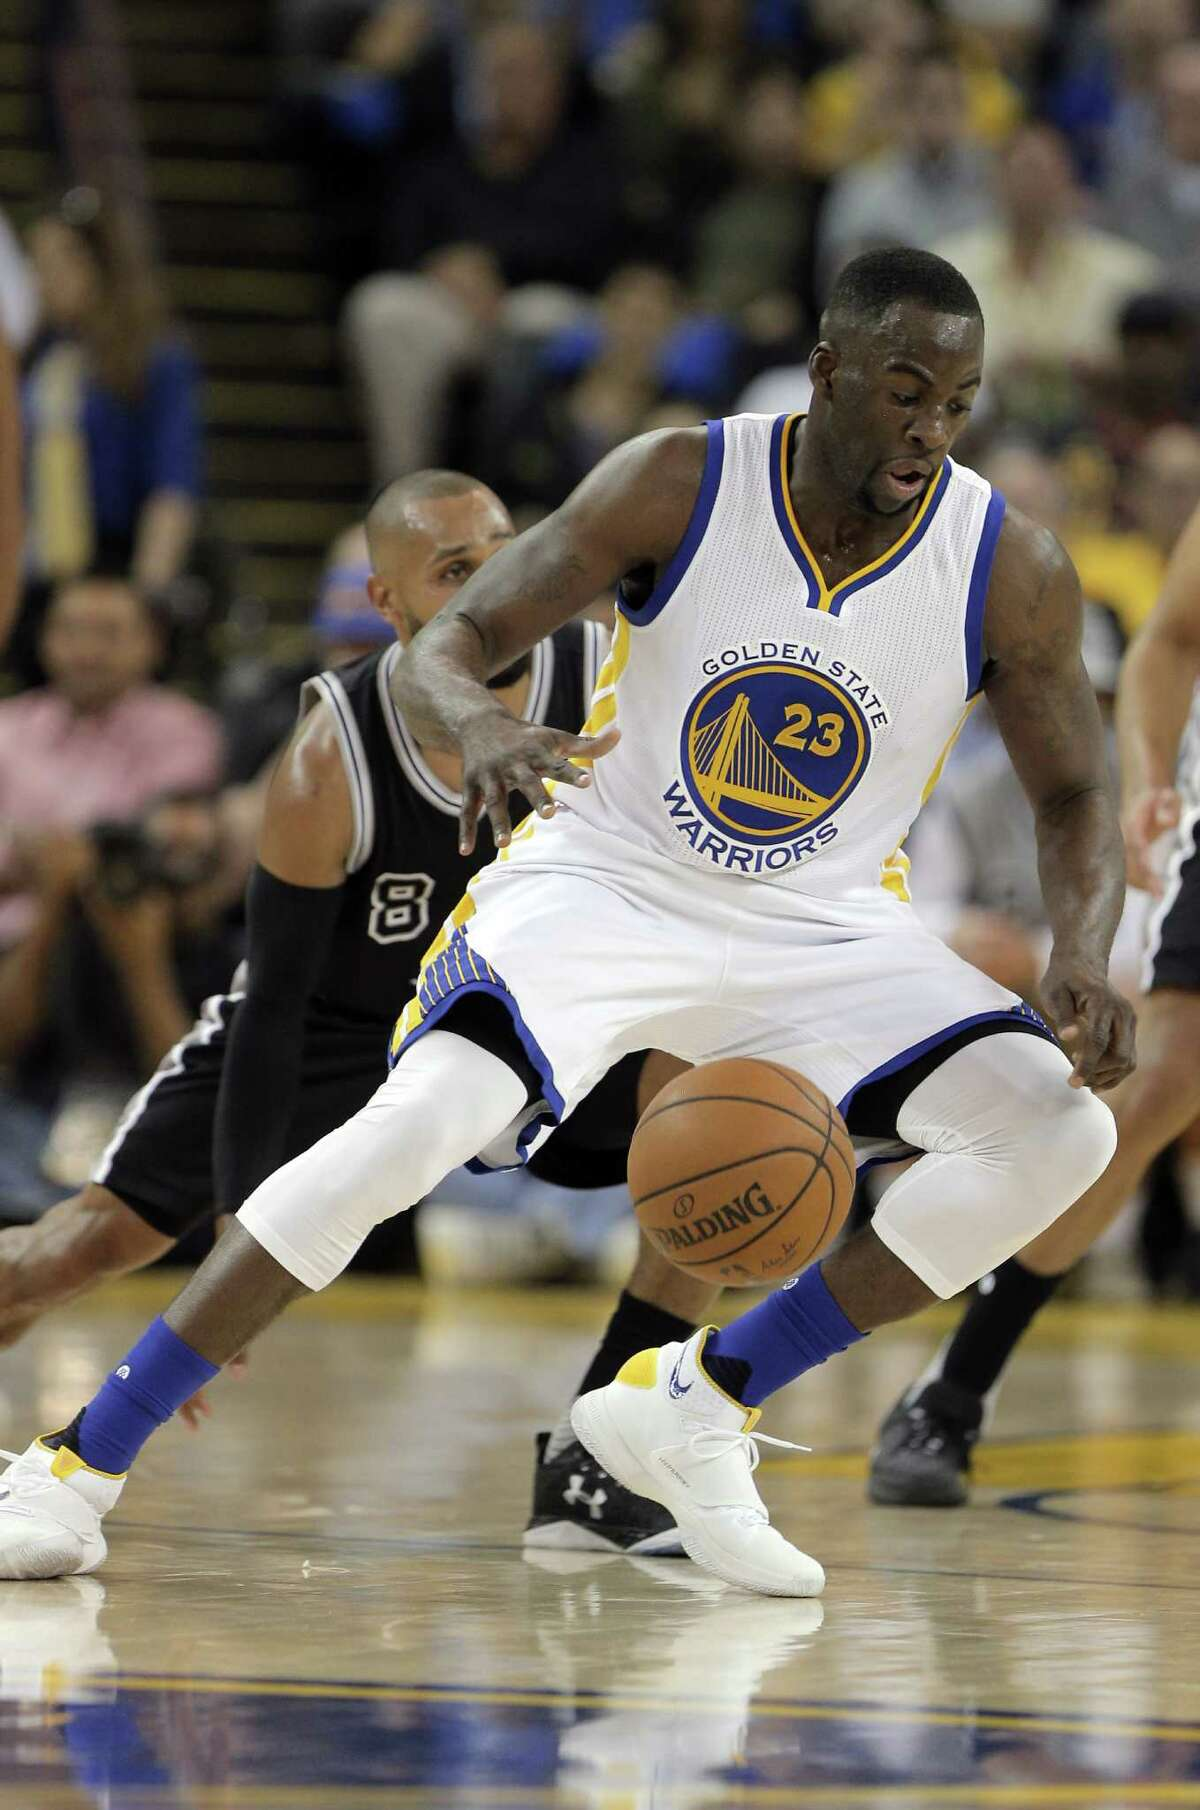 Draymond Green (23) dribbles toward the basket during the first half as the Golden State Warriors played the San Antonio Spurs at Oracle Arena in Oakland Calif., on Thursday, April 7, 2016.